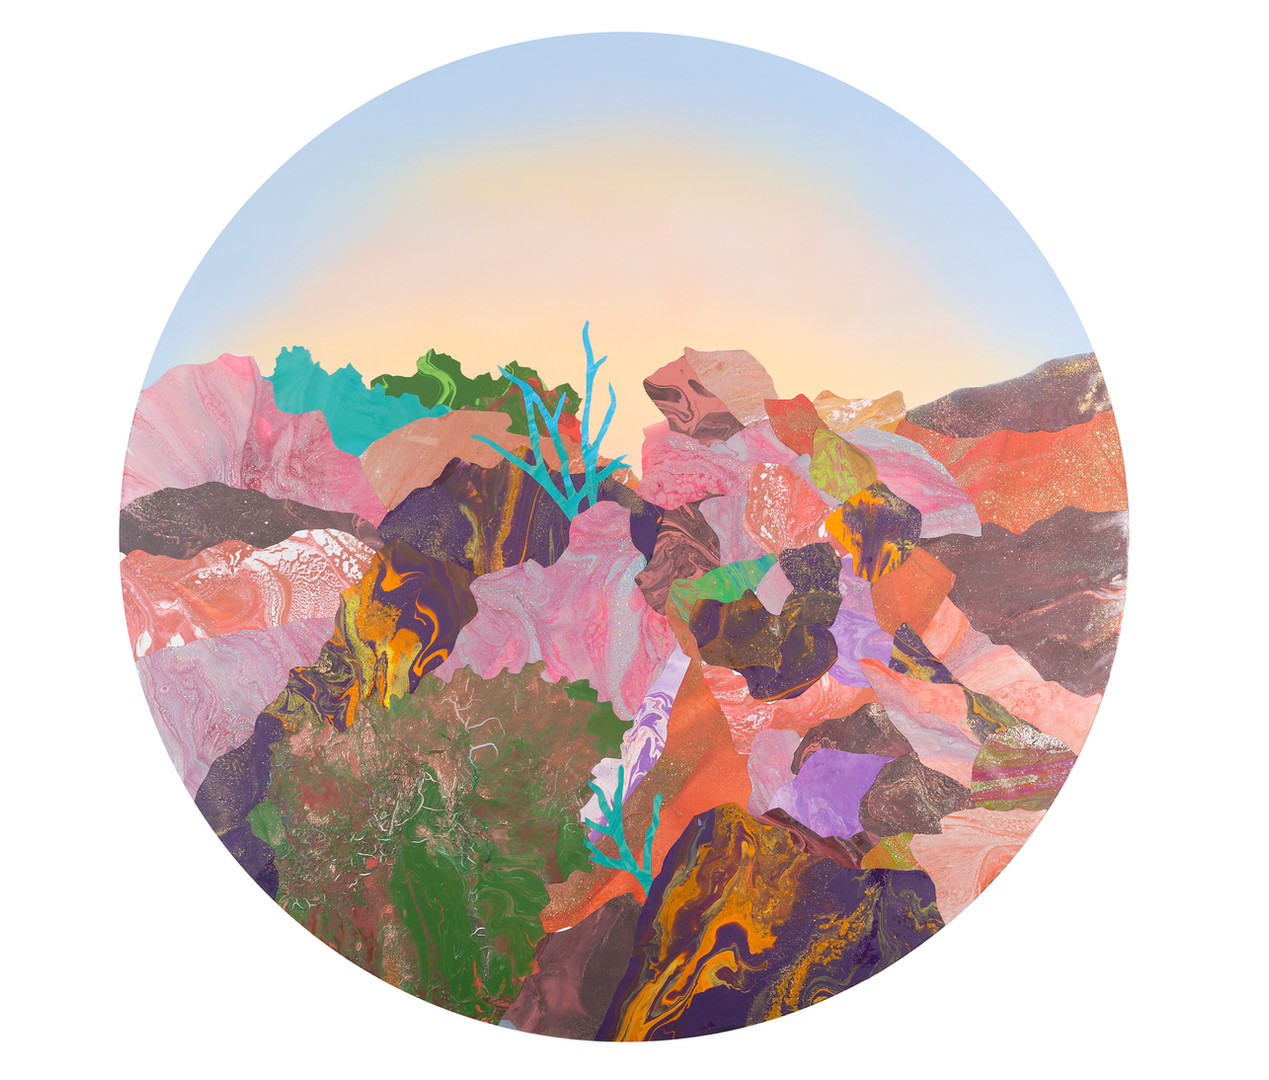 'The Grandparents - 1928 The Gorge' acrylic and resin on board, 120cm diameter, 2018